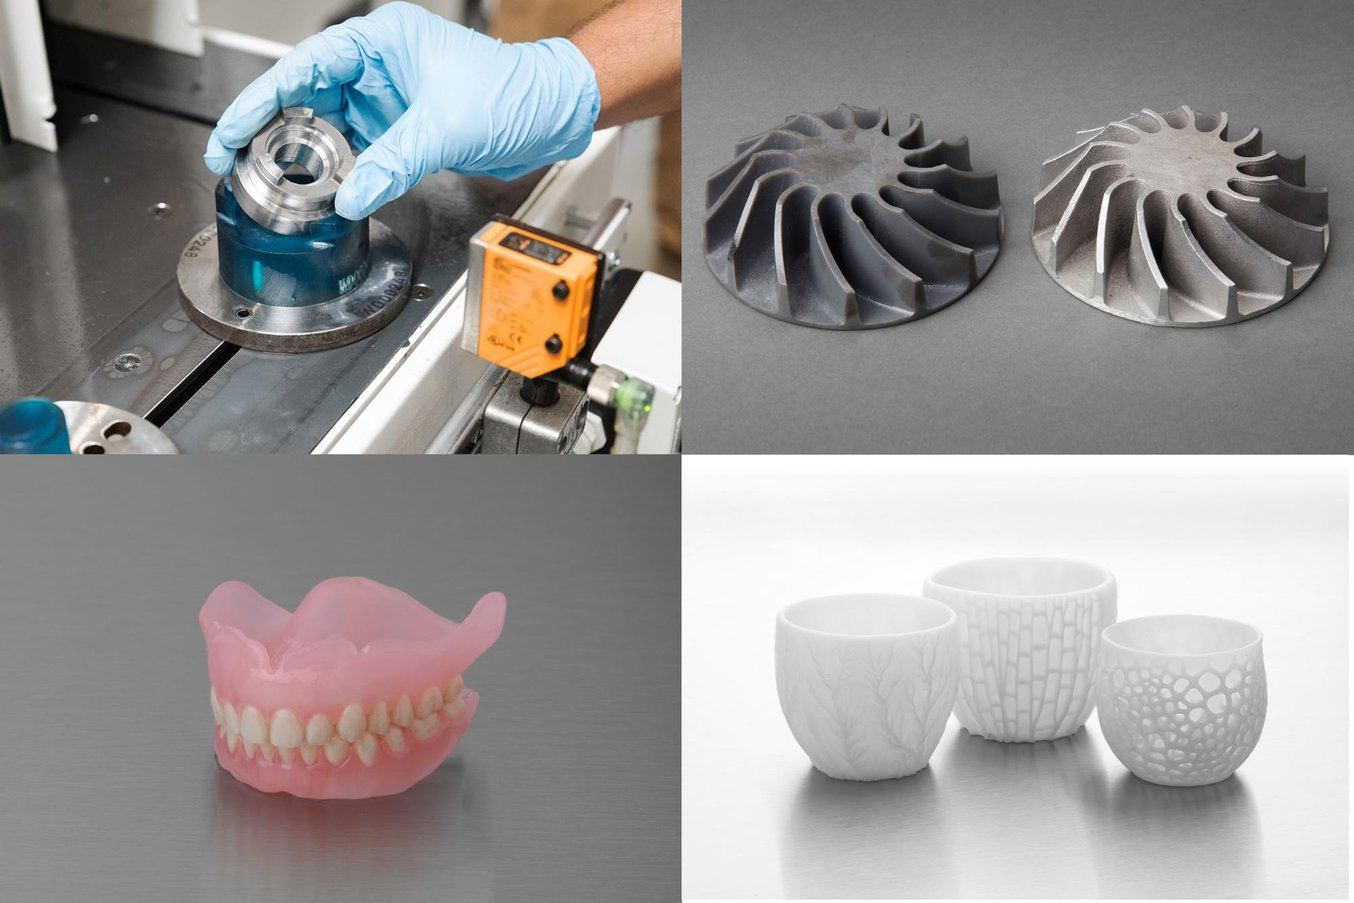 Four parts produced using the same SLA 3D printer. From top left to bottom right: a fixture in an automated production line at an automotive factory; a metal part casted using a 3D printed pattern; a biocompatible denture; and ceramic tableware.